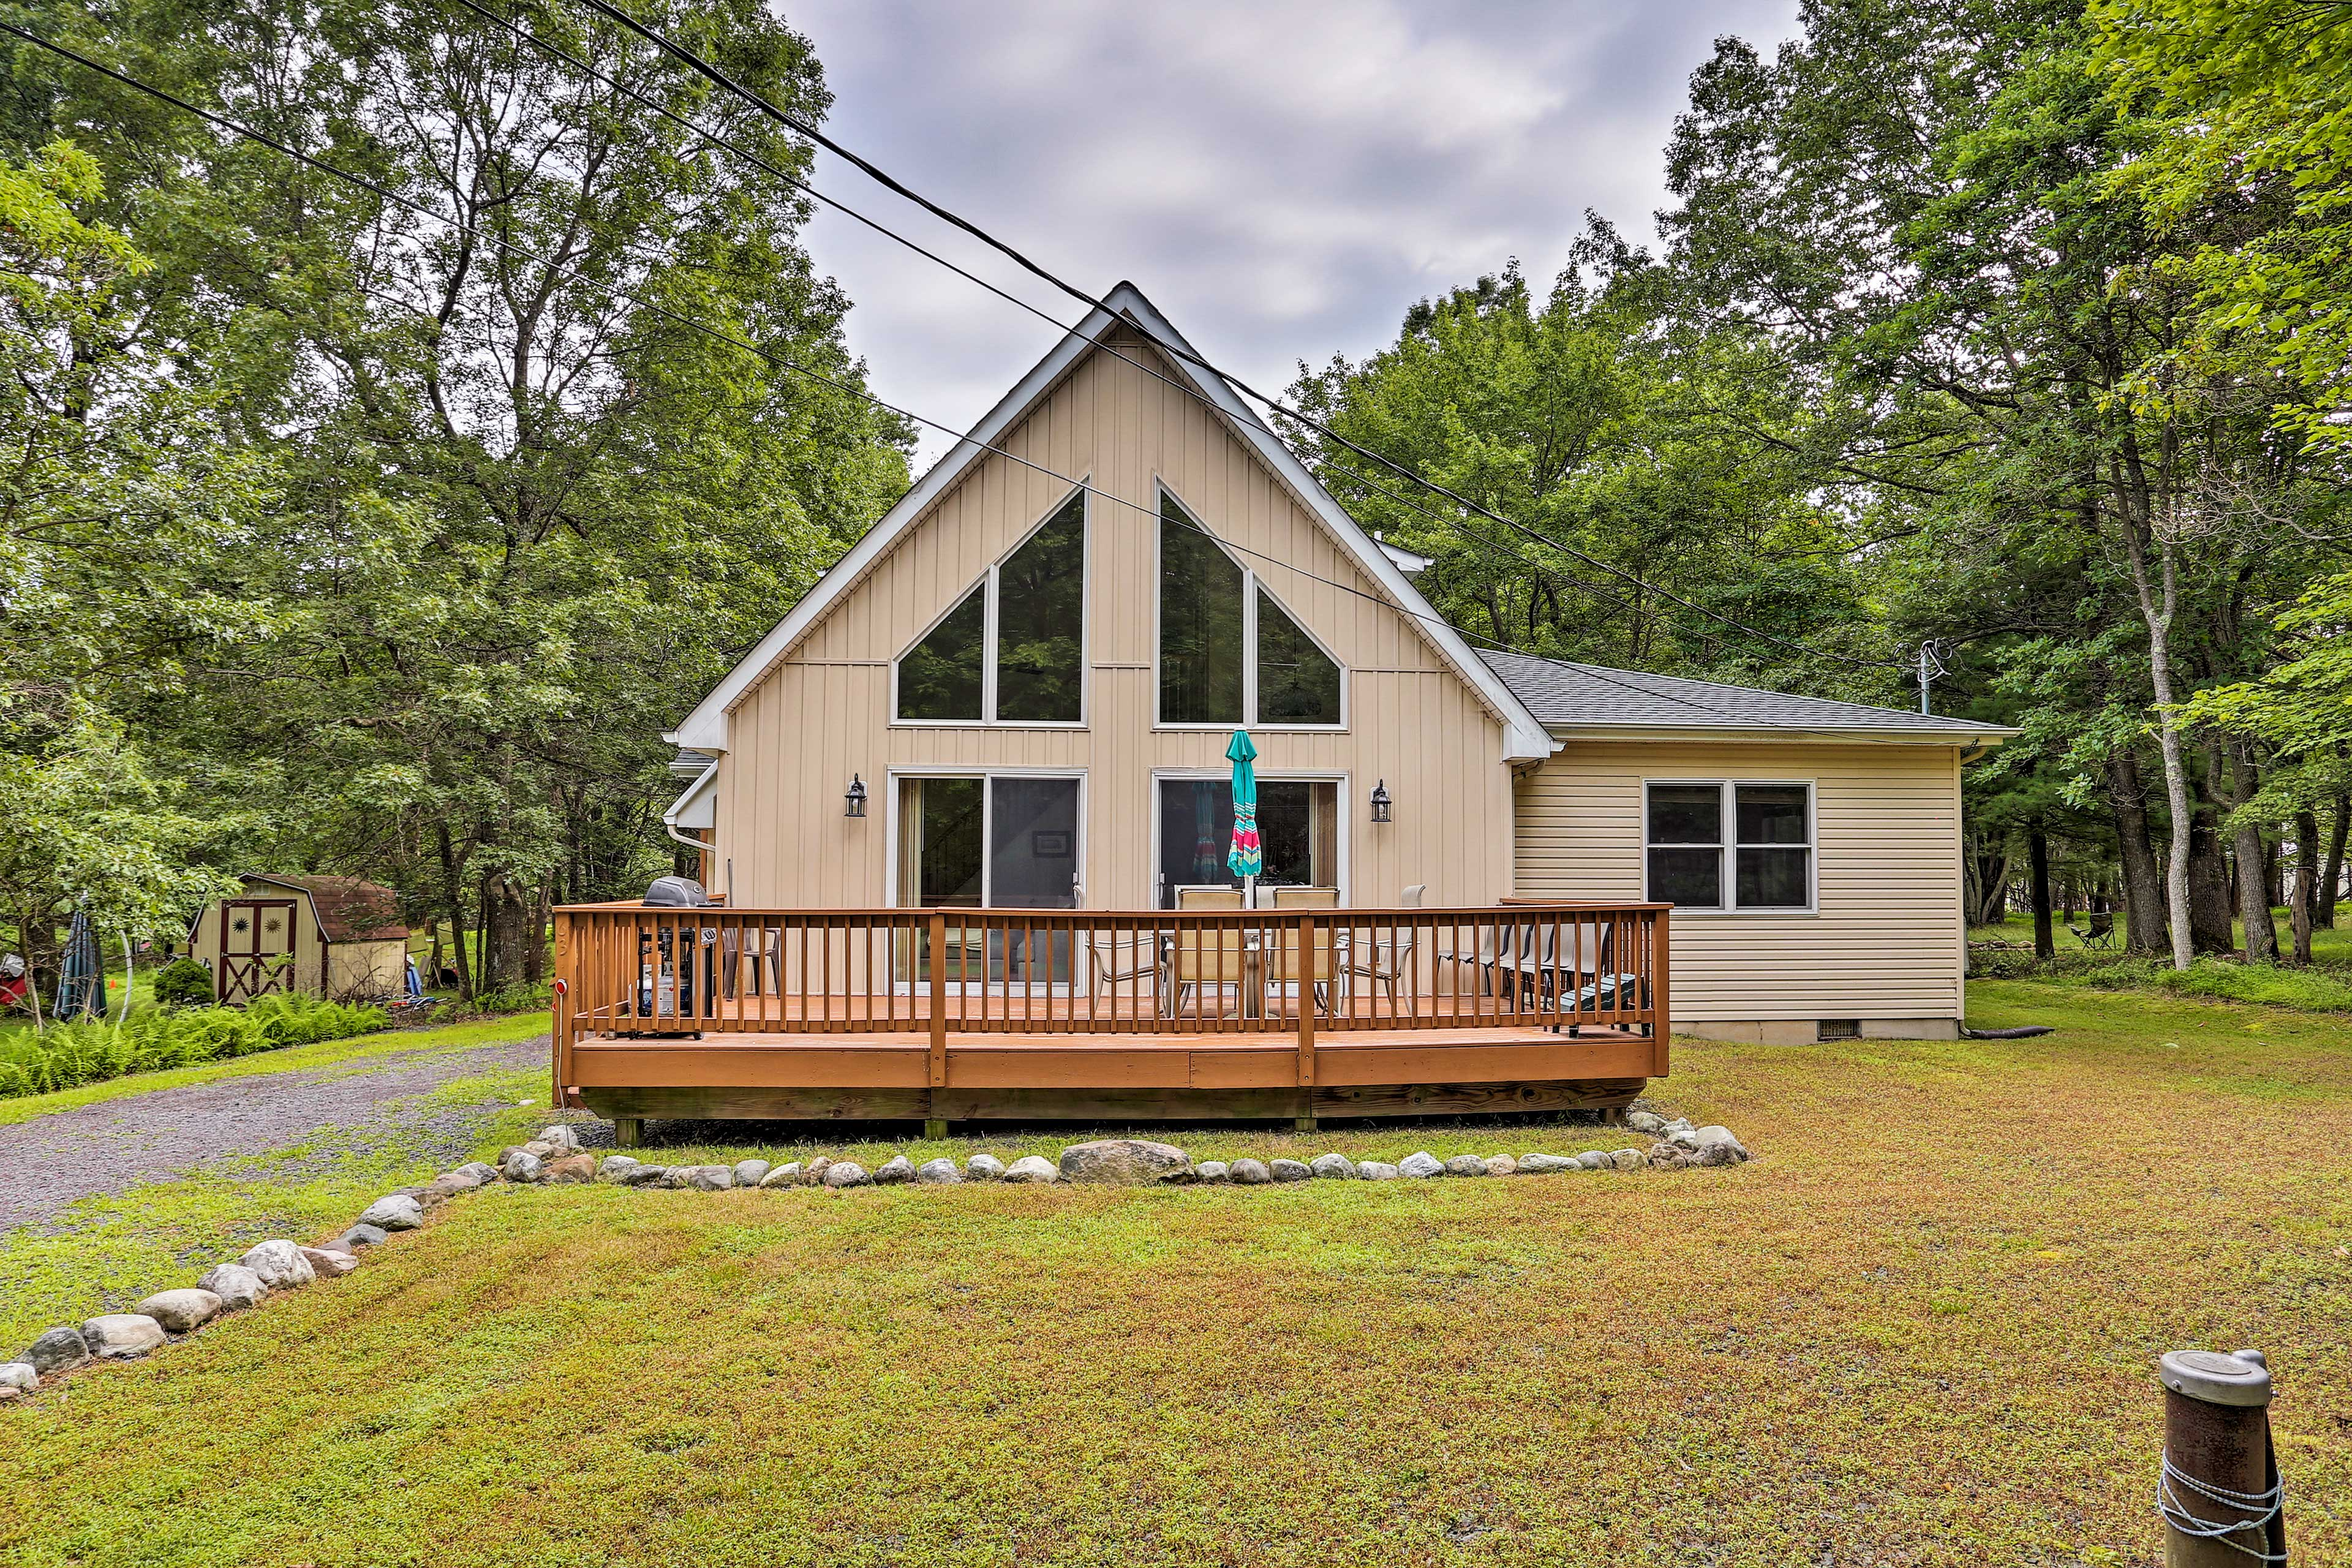 Book a trip to this cozy 4-bedroom, 2-bathroom vacation rental home for 14!